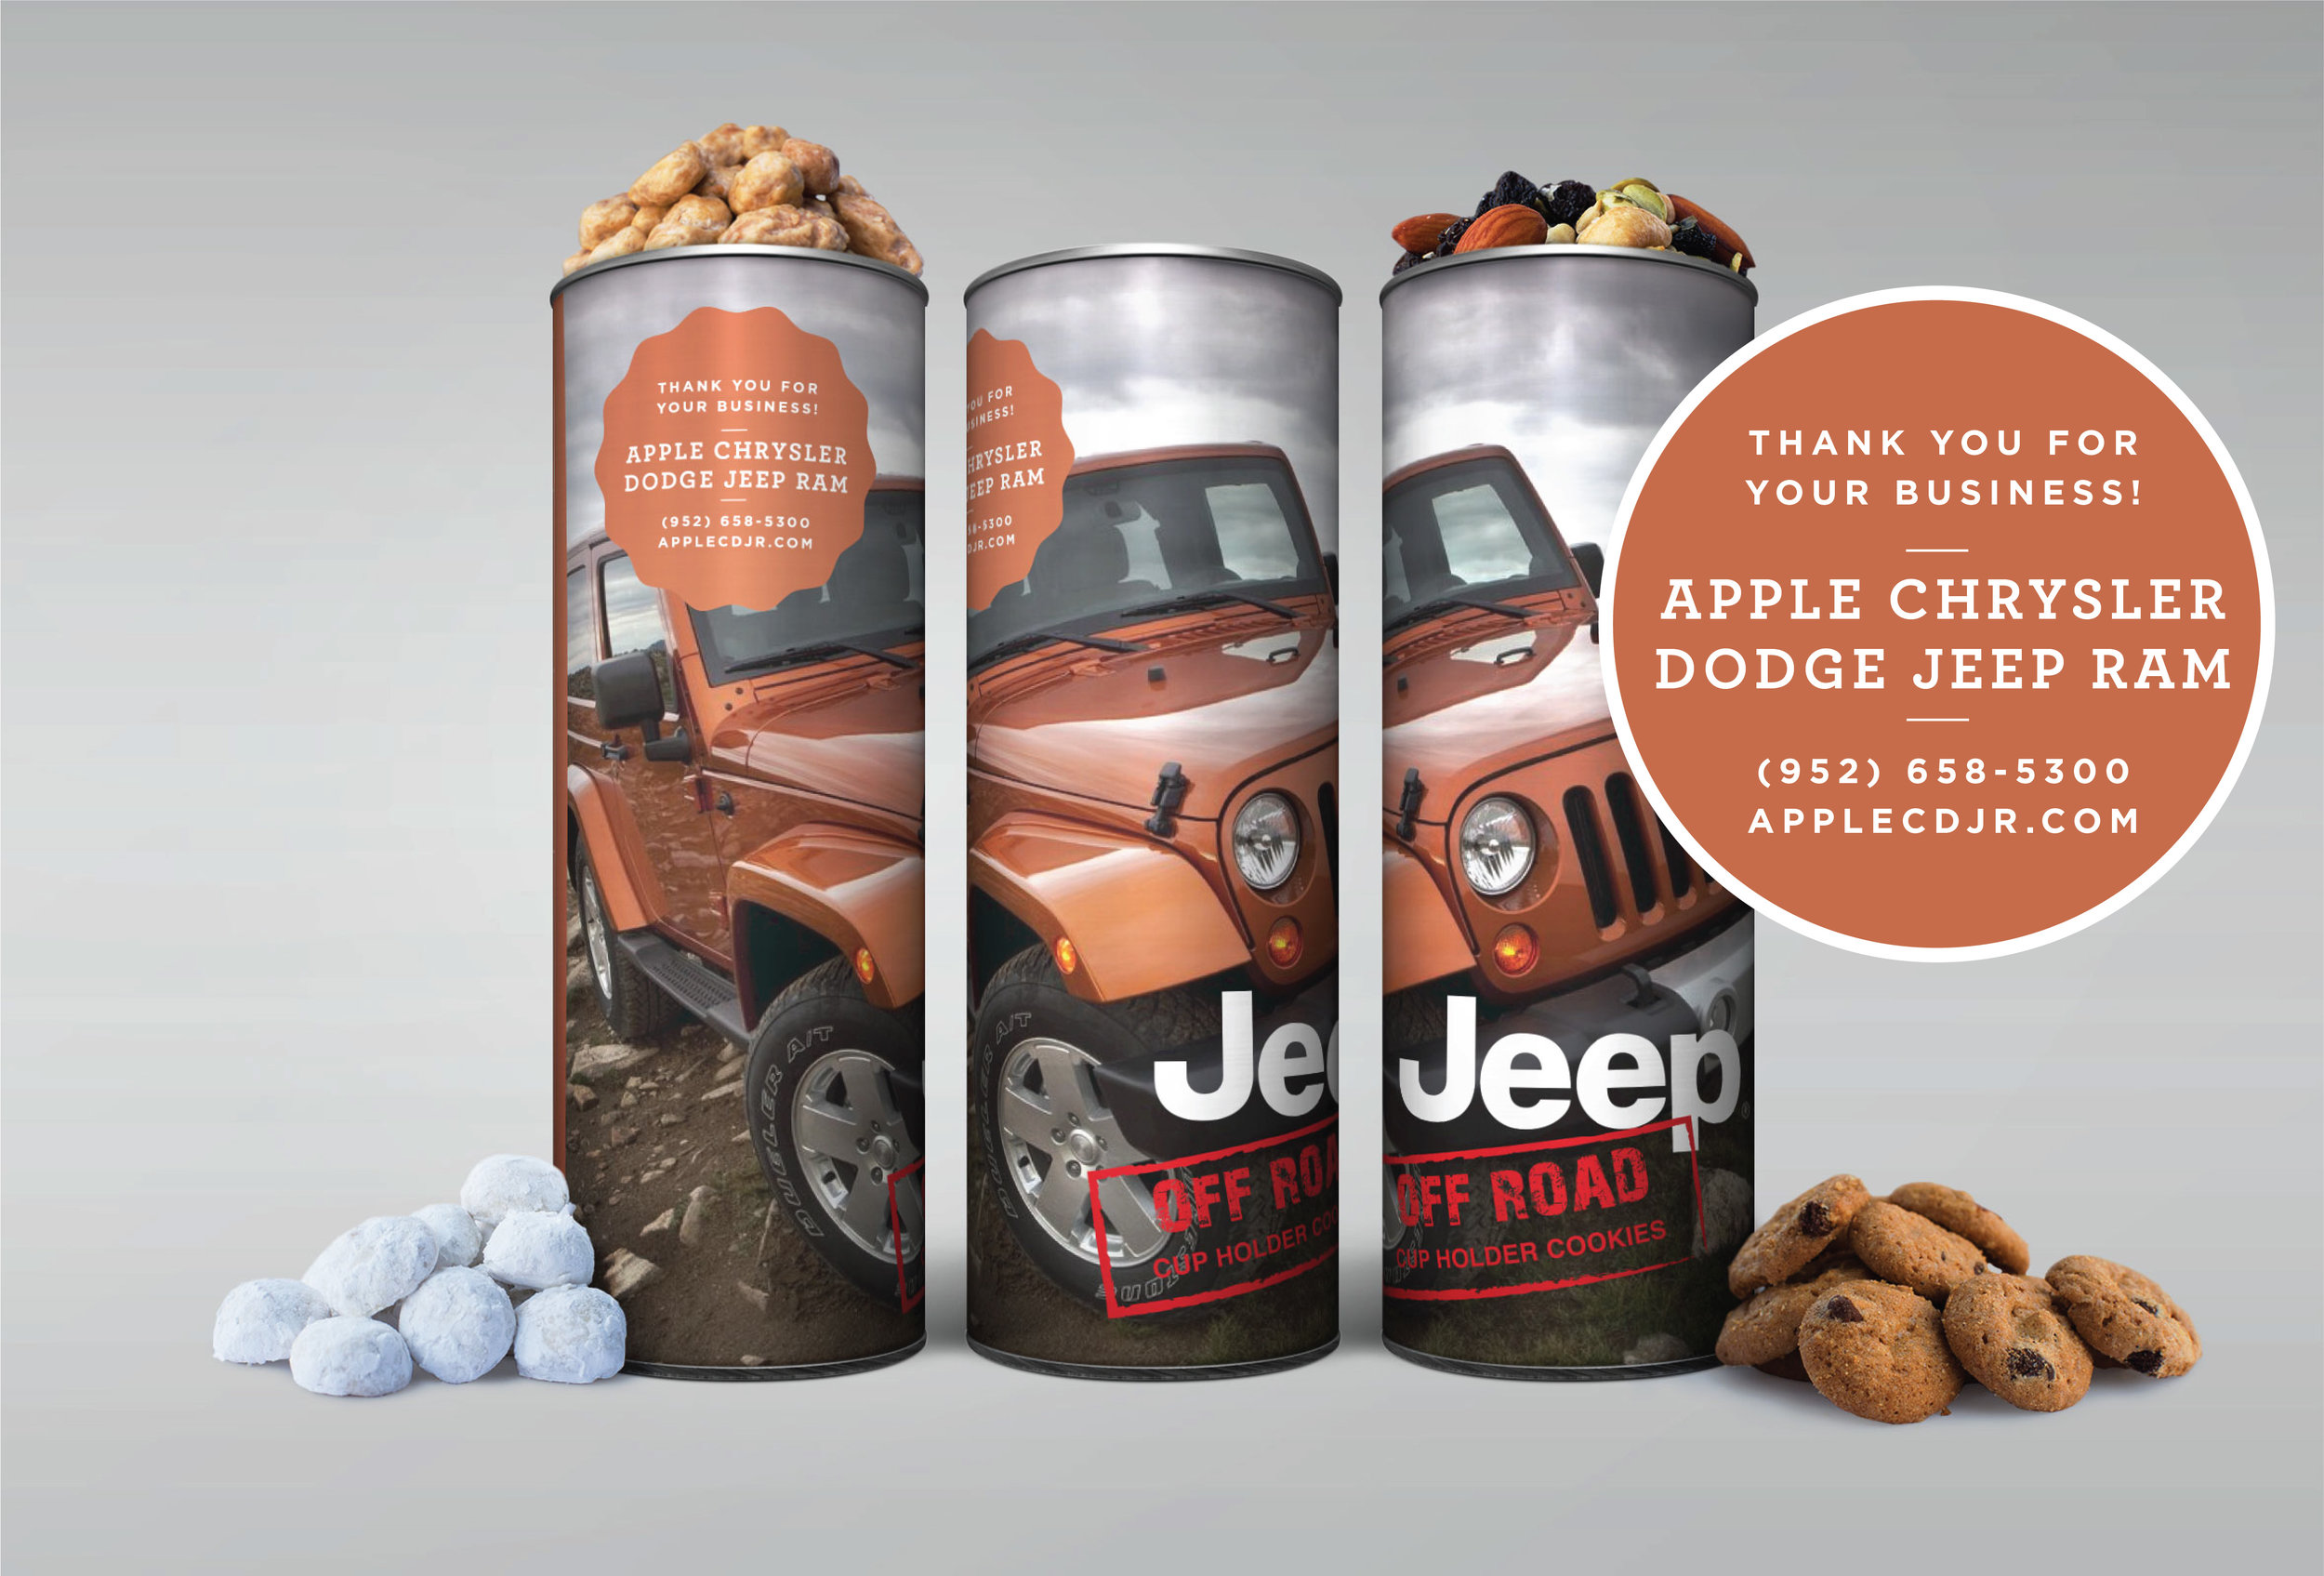 Auto dealerships use custom designed canisters as show above as a thank you gifts. The canisters fit perfectly in the cup holder and are a great surprise when the purchase is completed, in the waiting room while service is being done, or any other way you can think of.